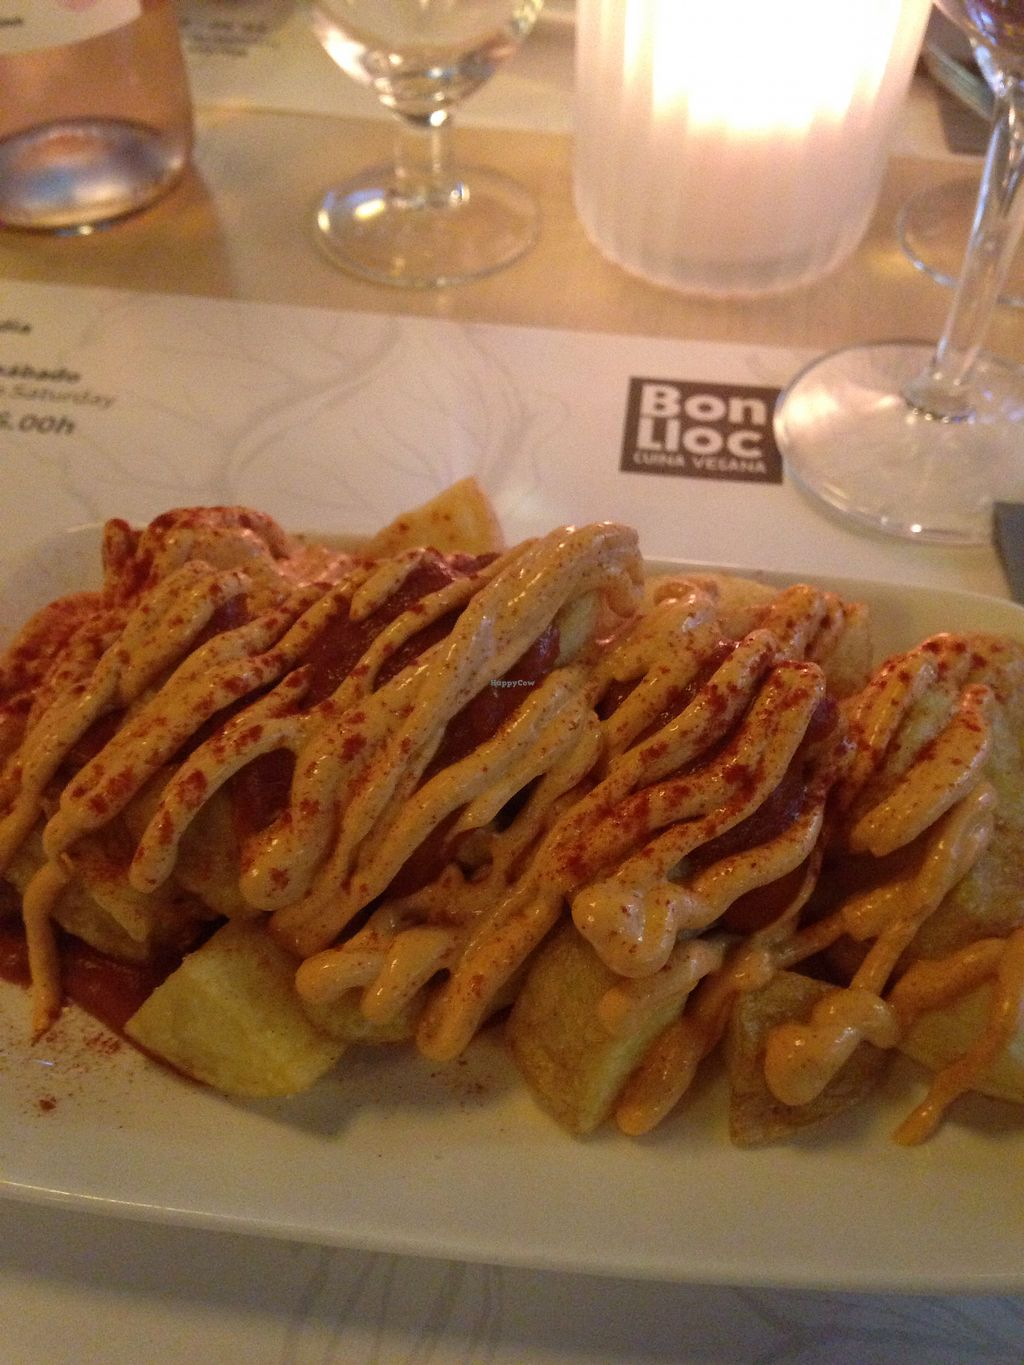 """Photo of Bon Lloc  by <a href=""""/members/profile/polos09"""">polos09</a> <br/>spicy potato starter <br/> July 9, 2017  - <a href='/contact/abuse/image/1155/278352'>Report</a>"""